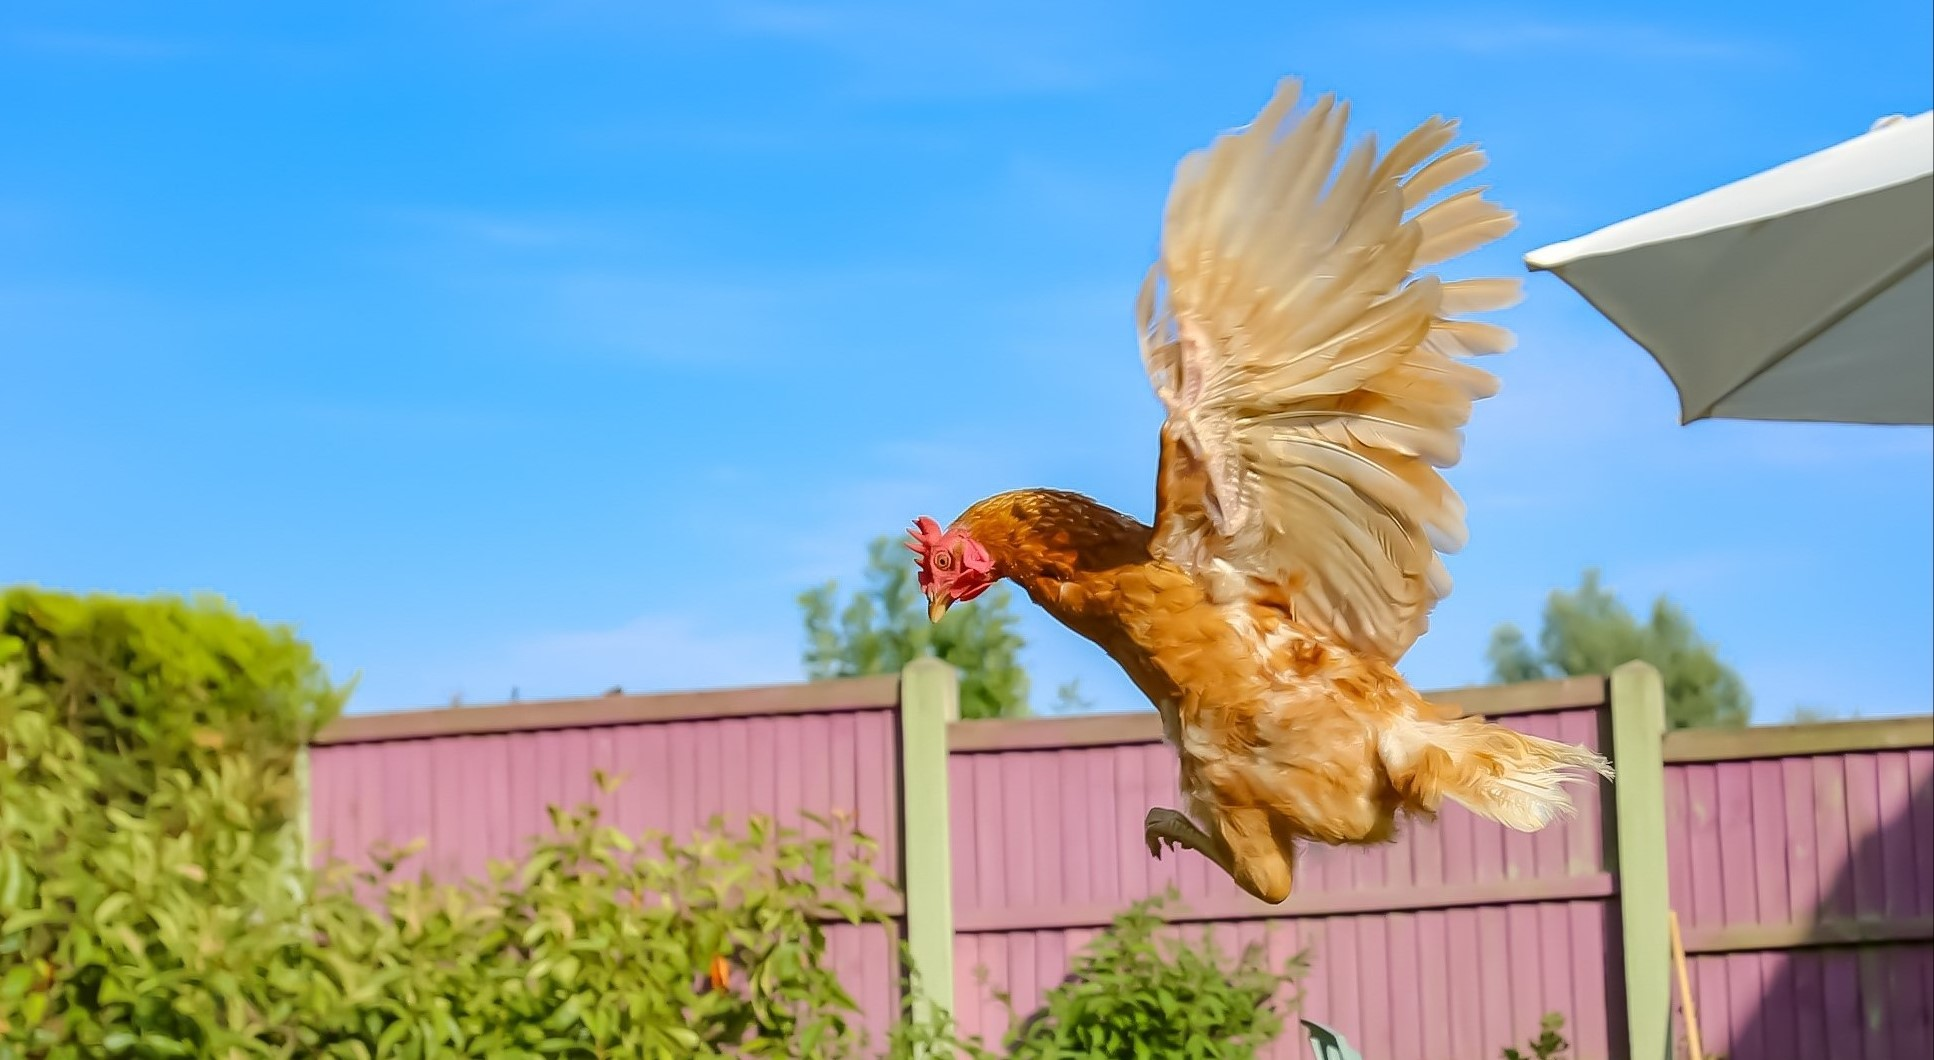 Primrose taking flight - our Hen of the Month winner for September 2018